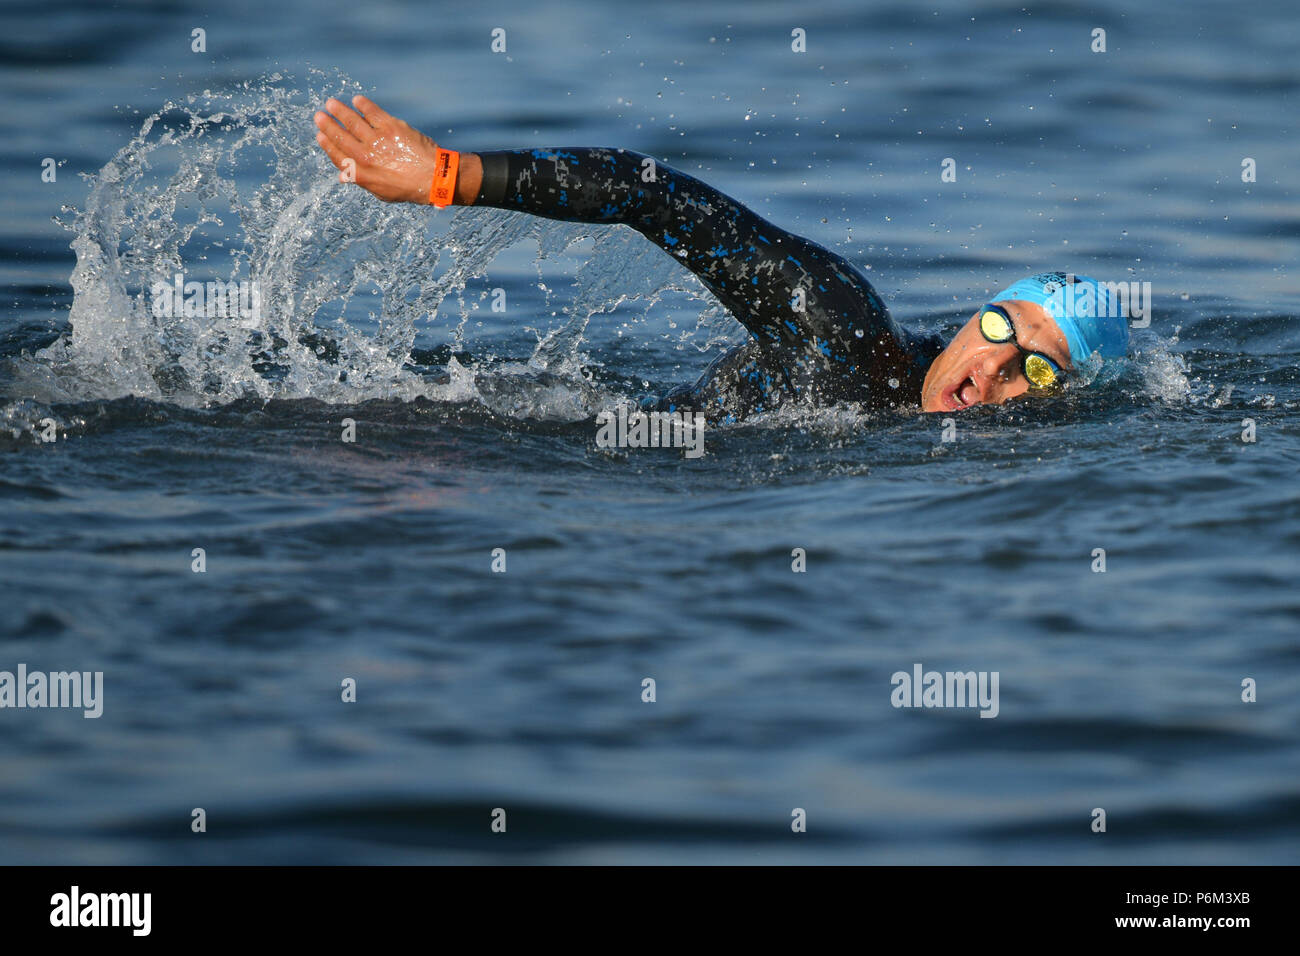 Edinburgh, UK. 1st Jul, 2018. Ironman 70.3 takes place at Preston Links with a swim in the sea over 1.2 miles, followed by a 56 mile cycle through the Lothians and a 13.1 mile run in Holyrood Park.  Credit: Steven Scott Taylor/Alamy Live News - Stock Image